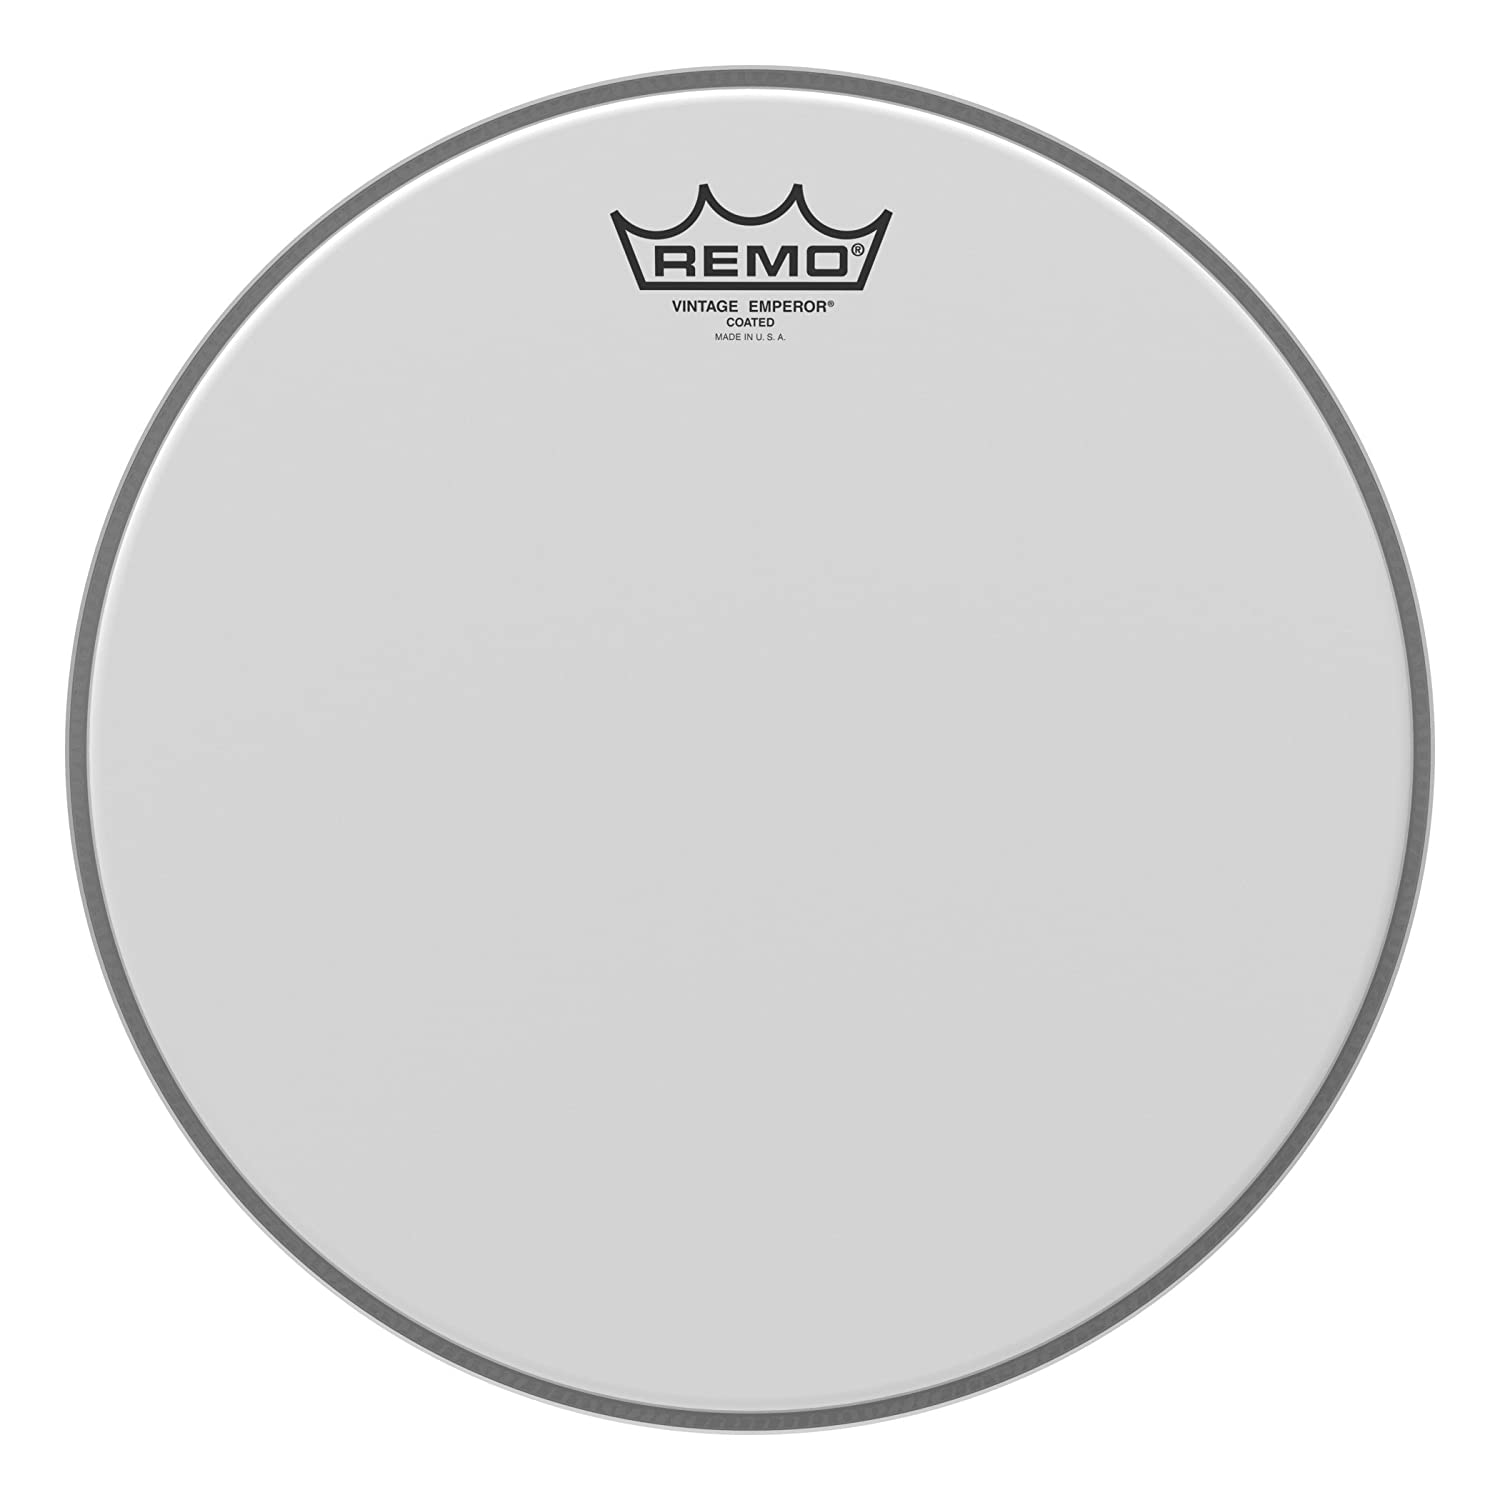 Remo VE0118-00 Vintage Emperor Coated Drum Head (18-Inch) KMC Music Inc VE011800